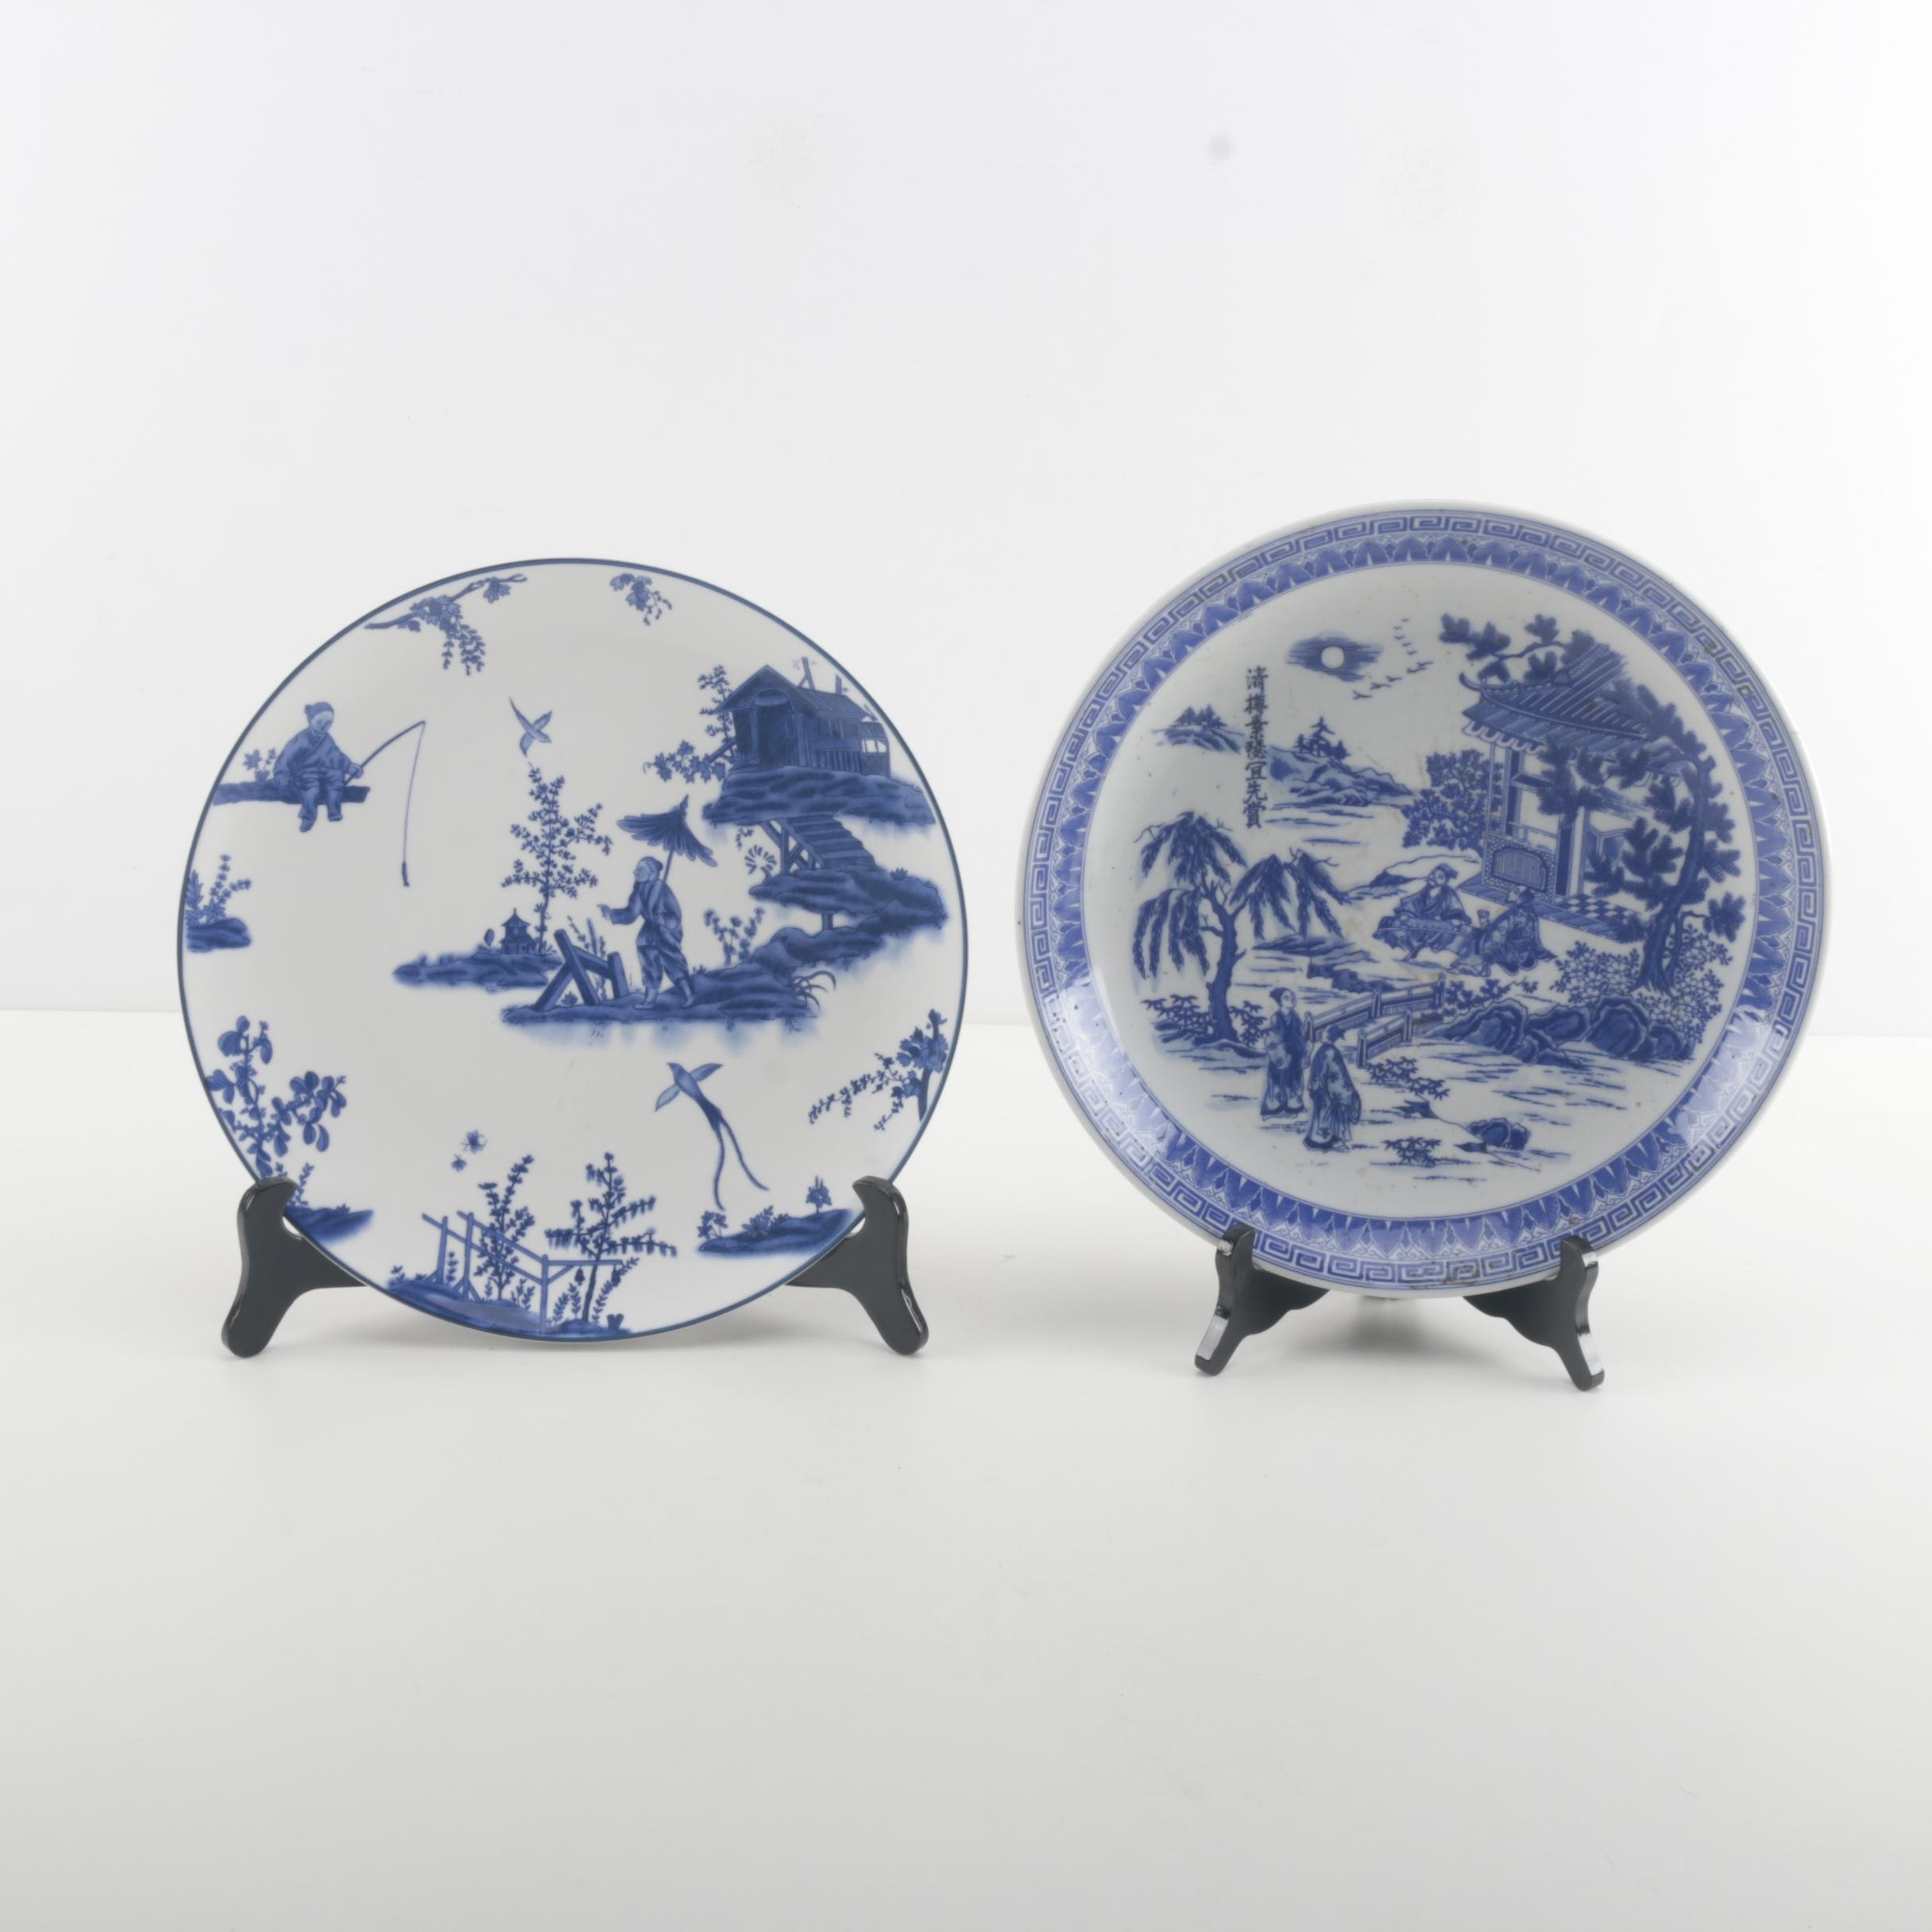 Blue and White Floral Ceramic Decorative Plates with Stands